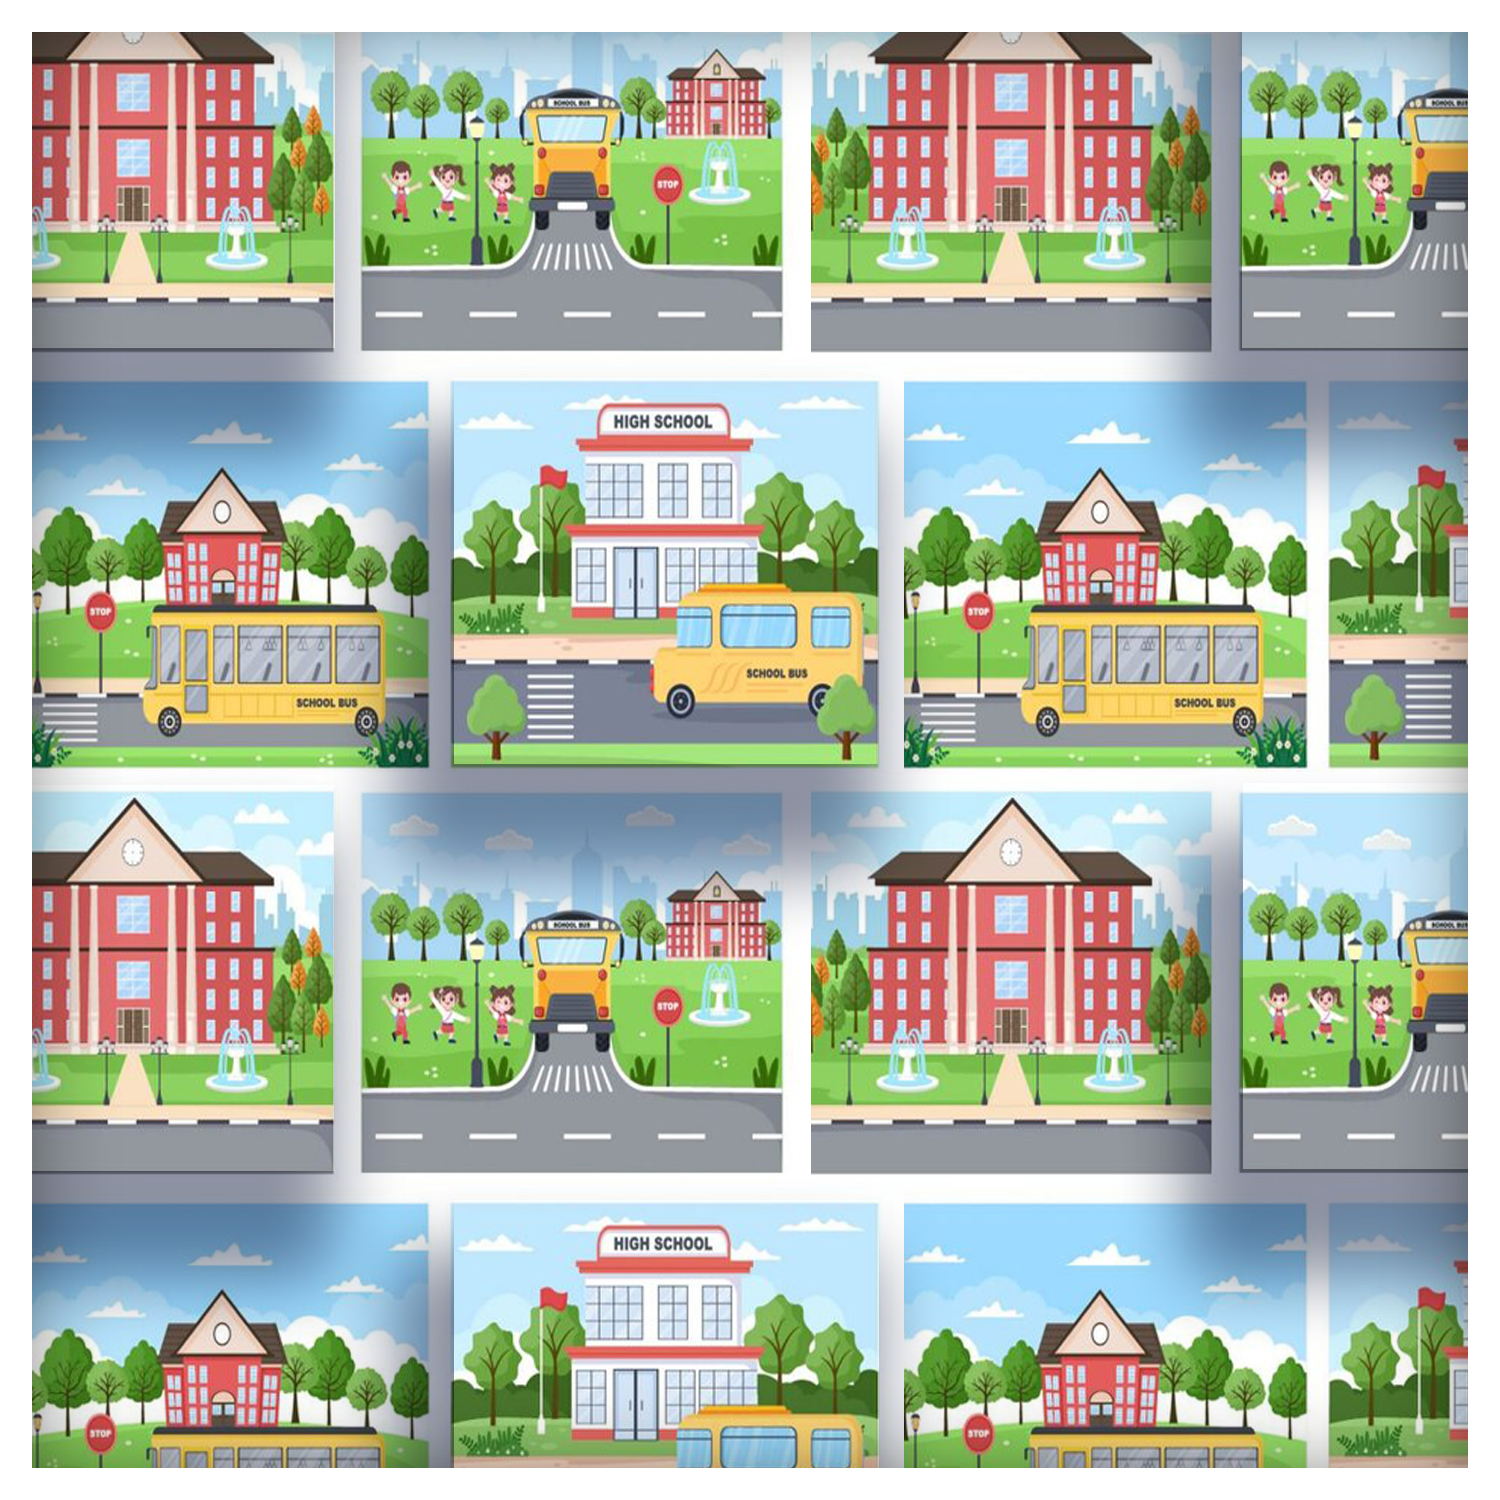 20 Back To School and Cute Bus Illustrations cover image.